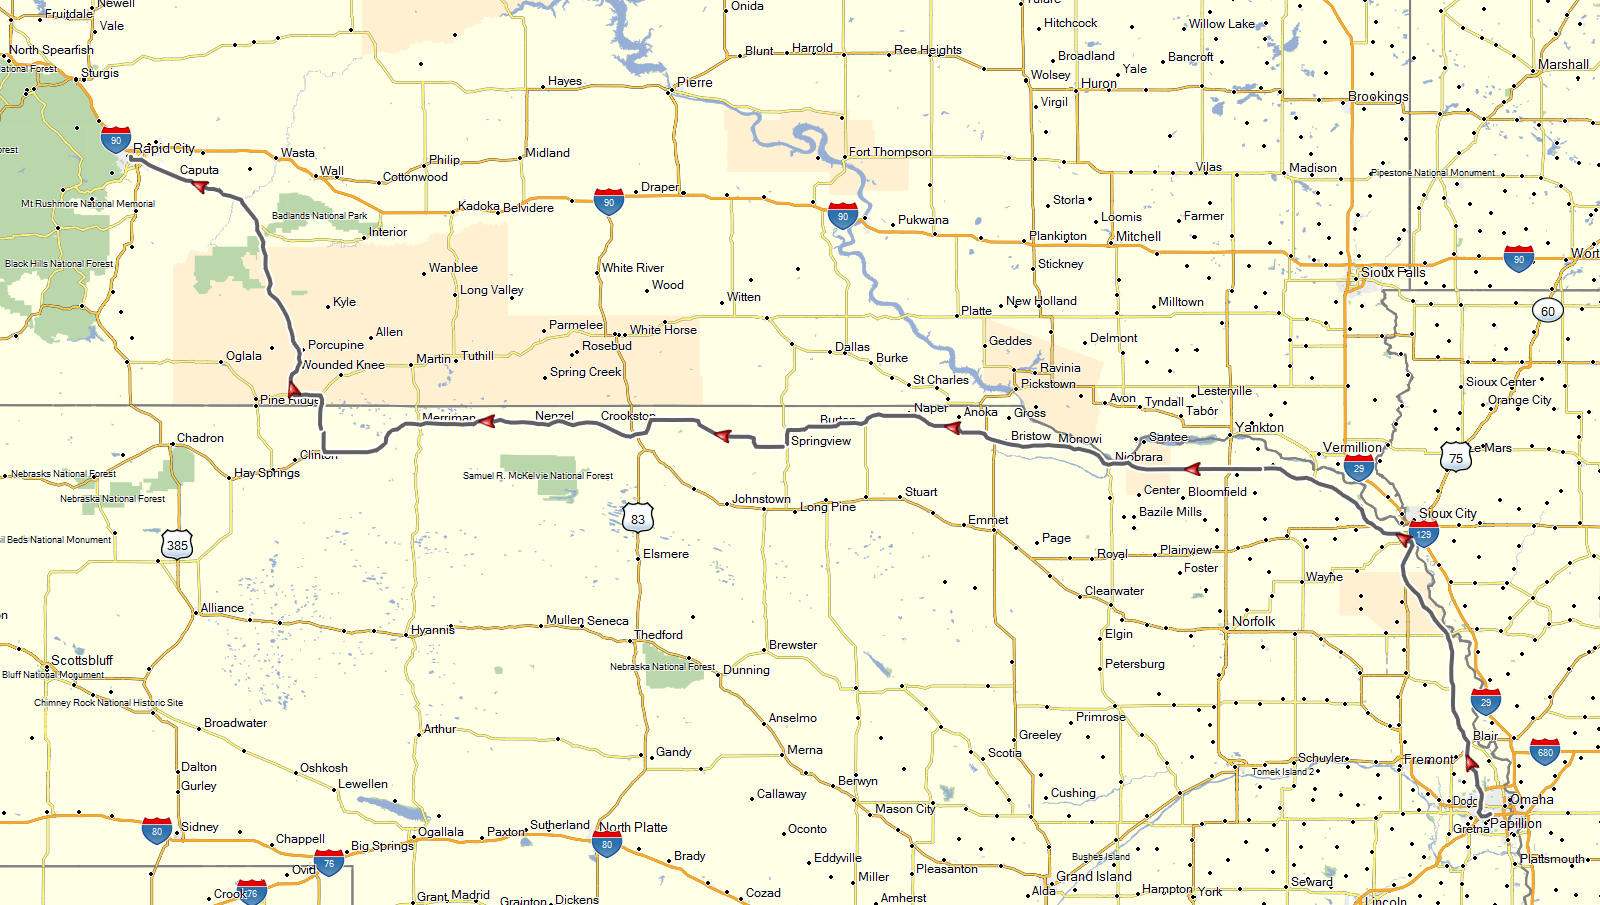 my route from omaha ne to rapid city sd